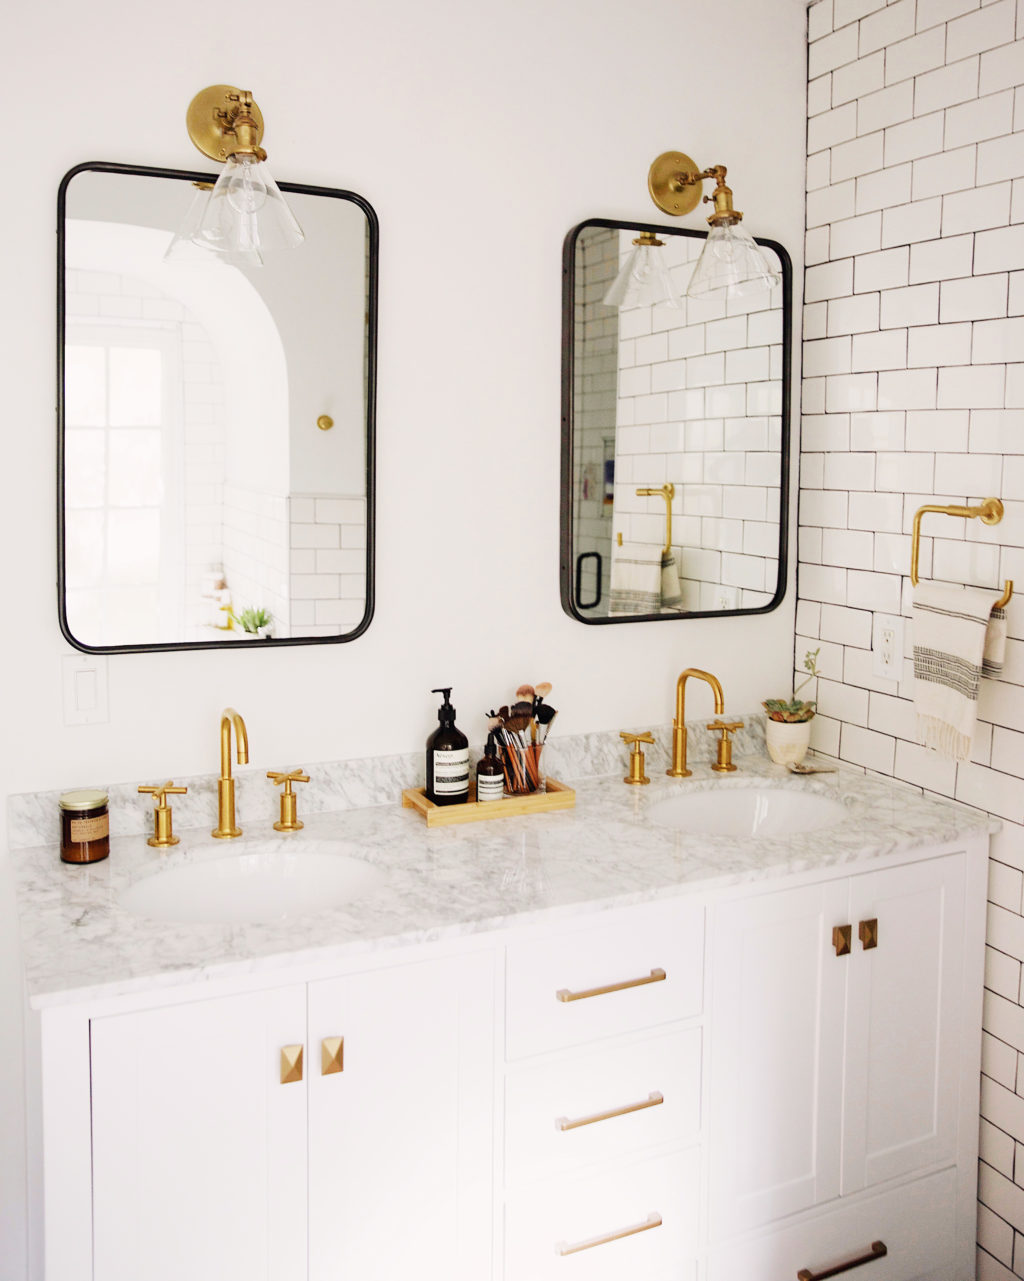 One Bathroom Has Brass Faucets, The Other Has Black Ones That Play Off The  Black Mirror. Both Look Amazing.